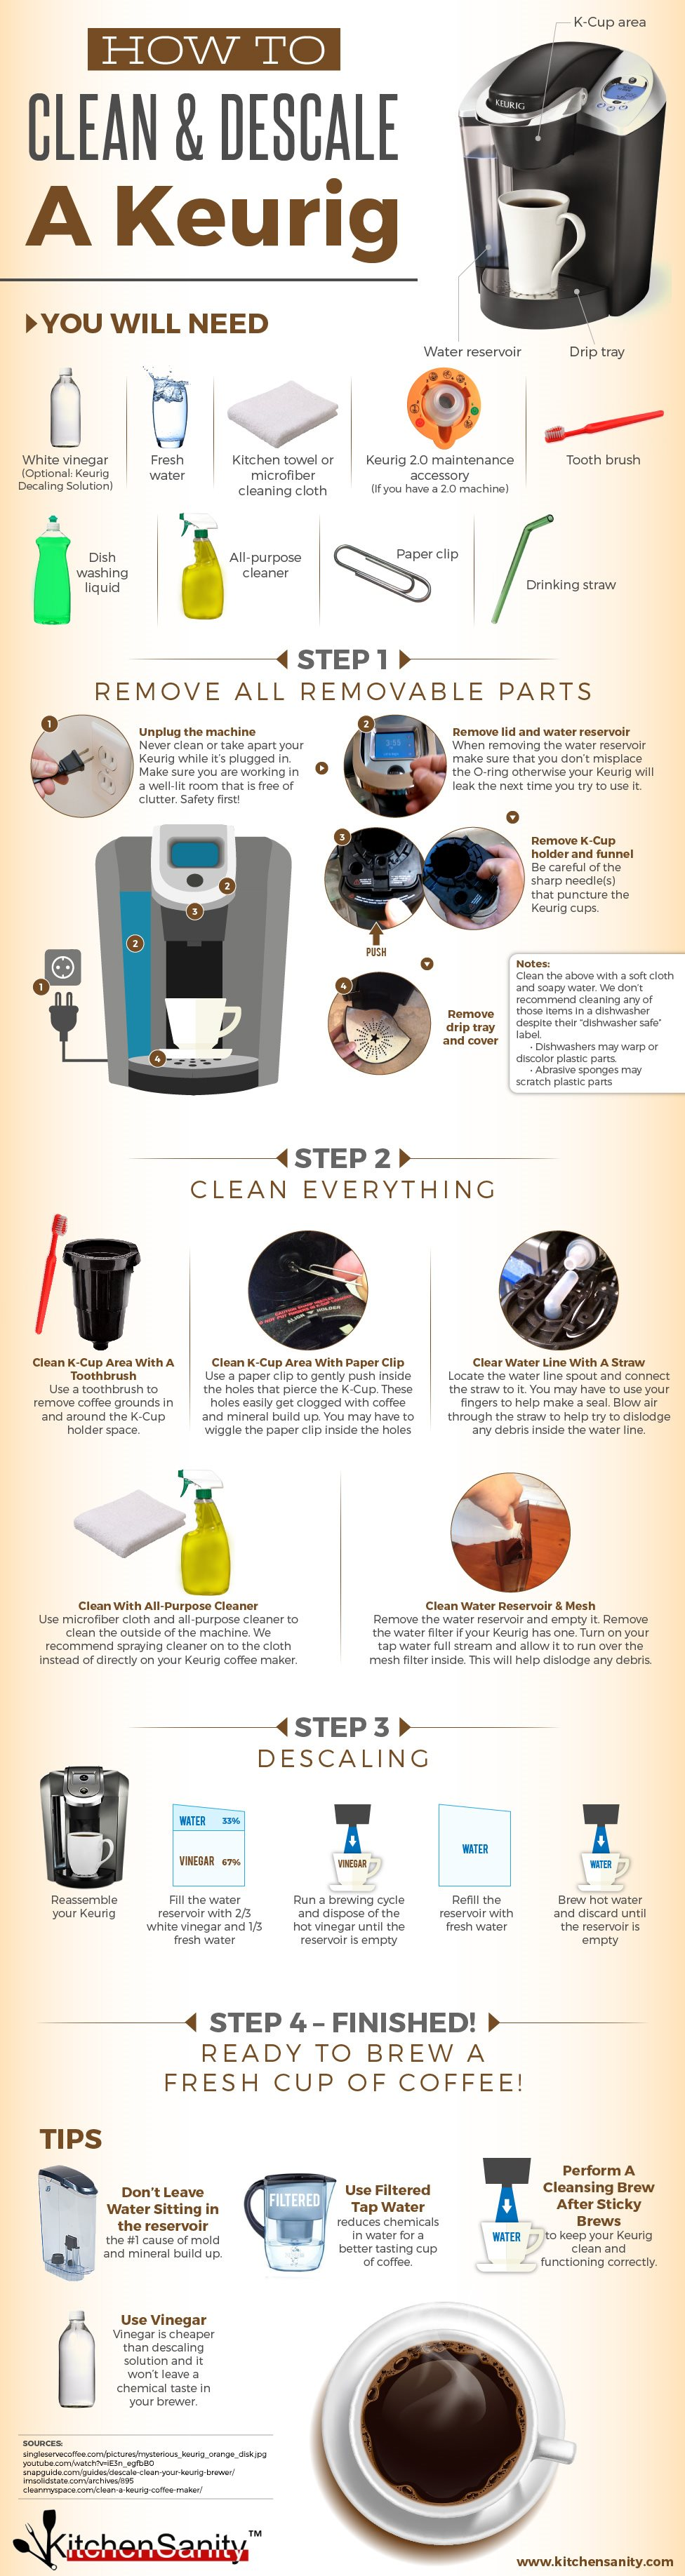 Keurig Coffee Maker Instructions For Cleaning : (GUIDE) How To Clean And Descale A Keurig KitchenSanity